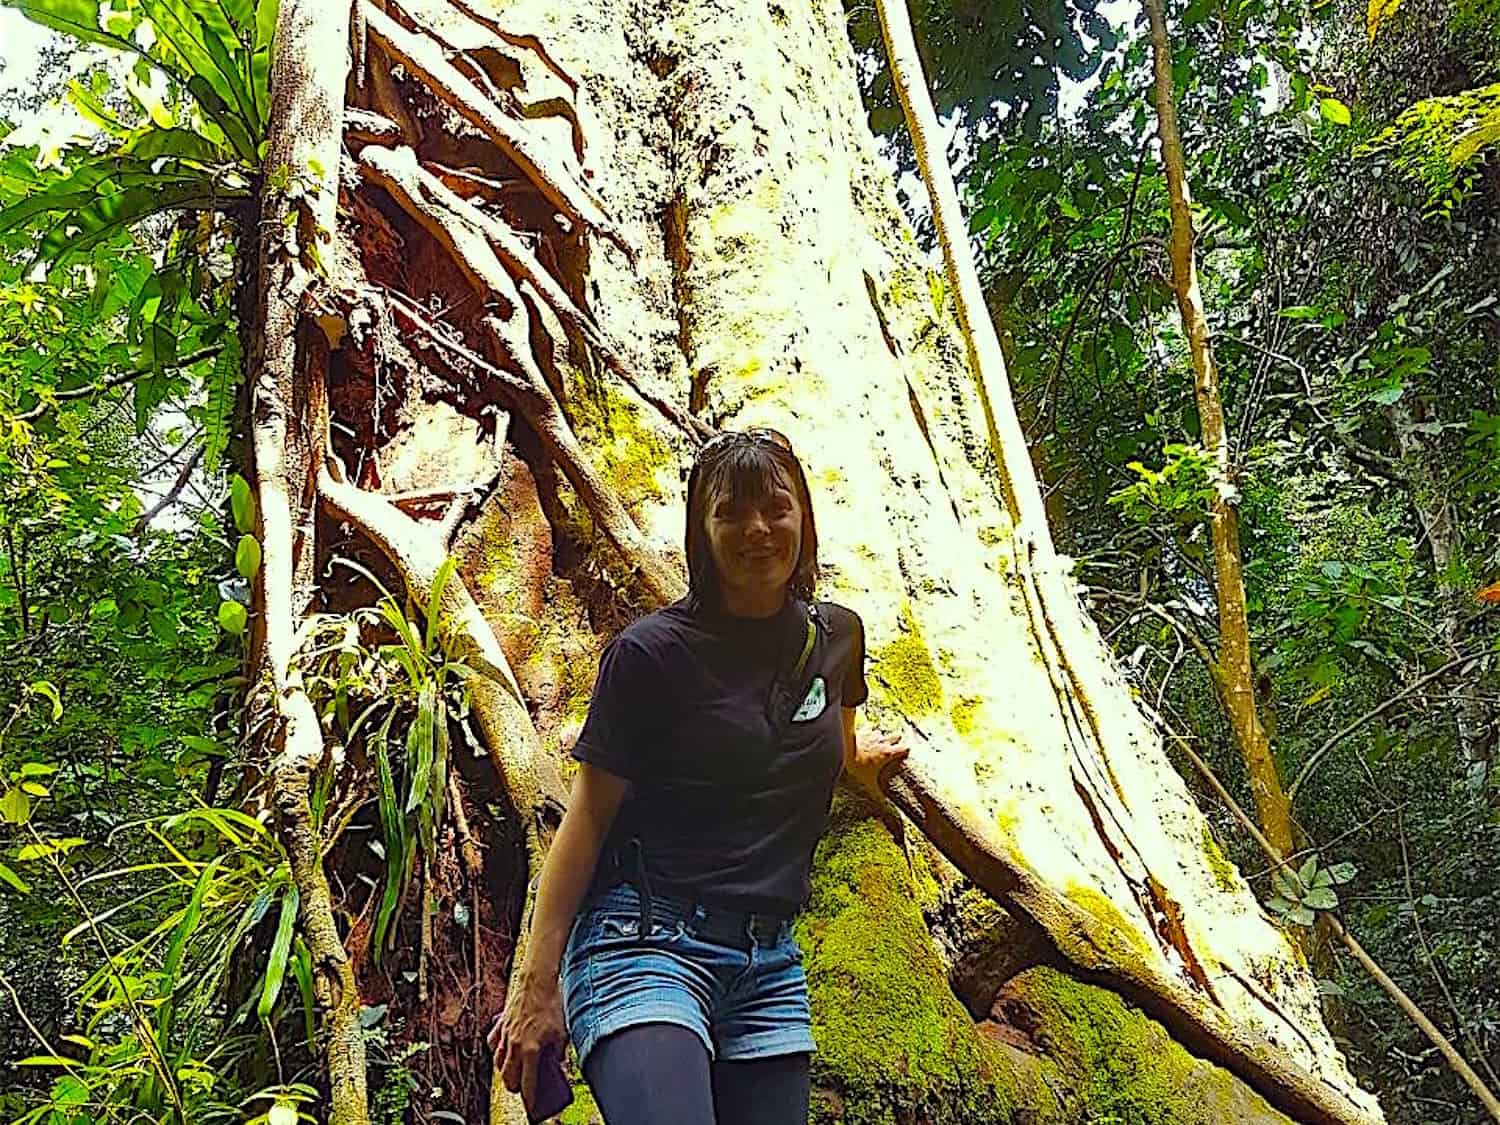 BUKIT LAWANG JUNGLE TREKKING - JUNGLE VIEW HIKE - SHORT TREK BY SUMATRA ECOTRAVEL